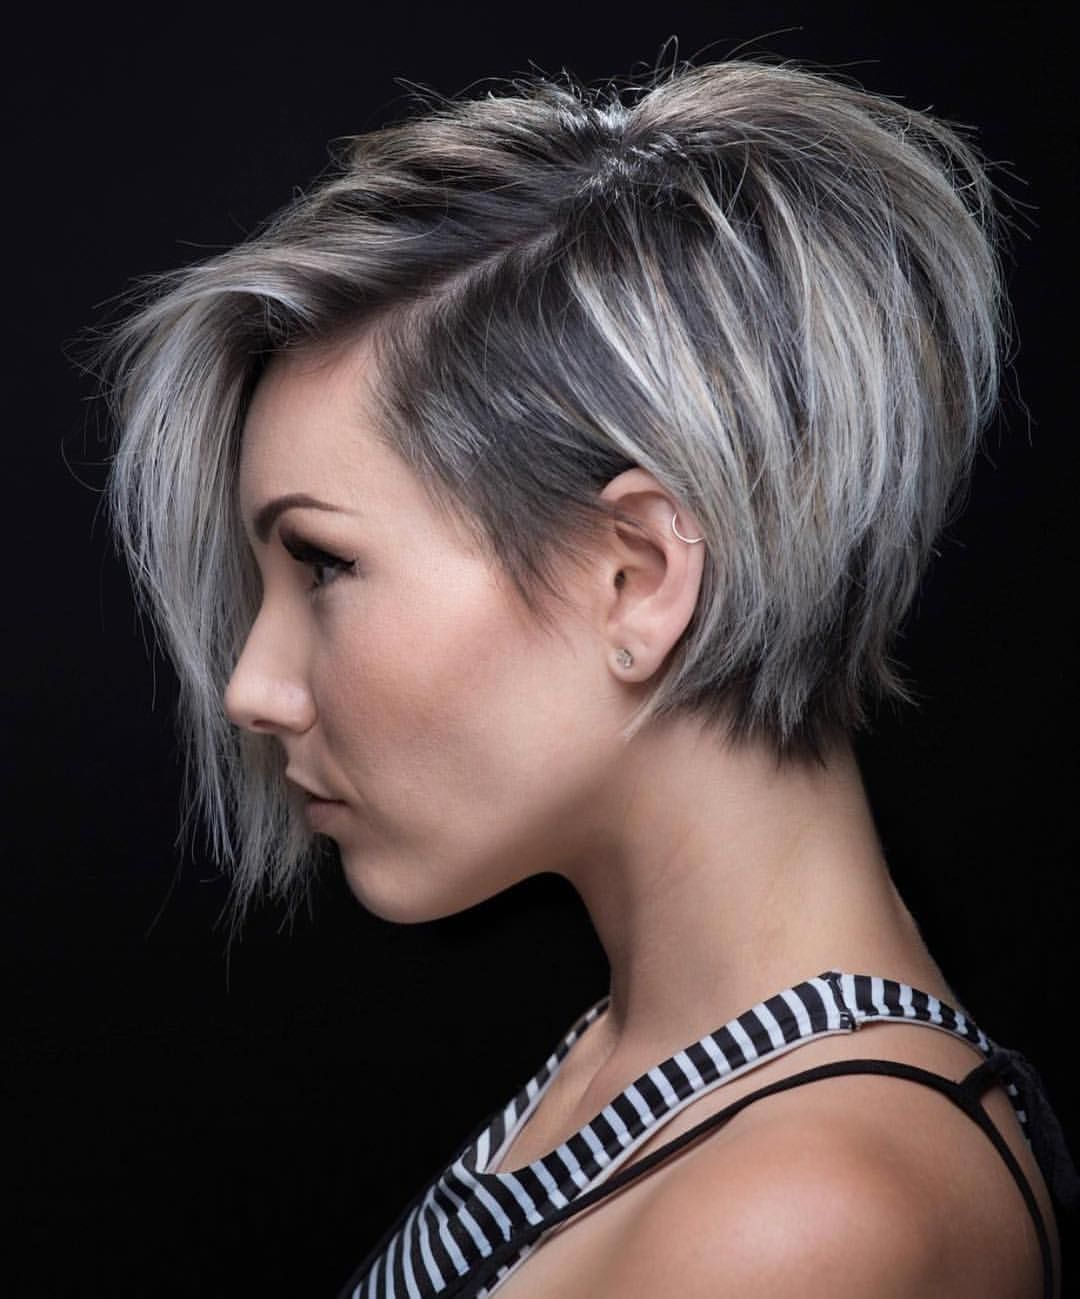 Short Hairstyles Inspiration Whoathis One Might Be A Game Changer Hair & Beauty  Pinterest